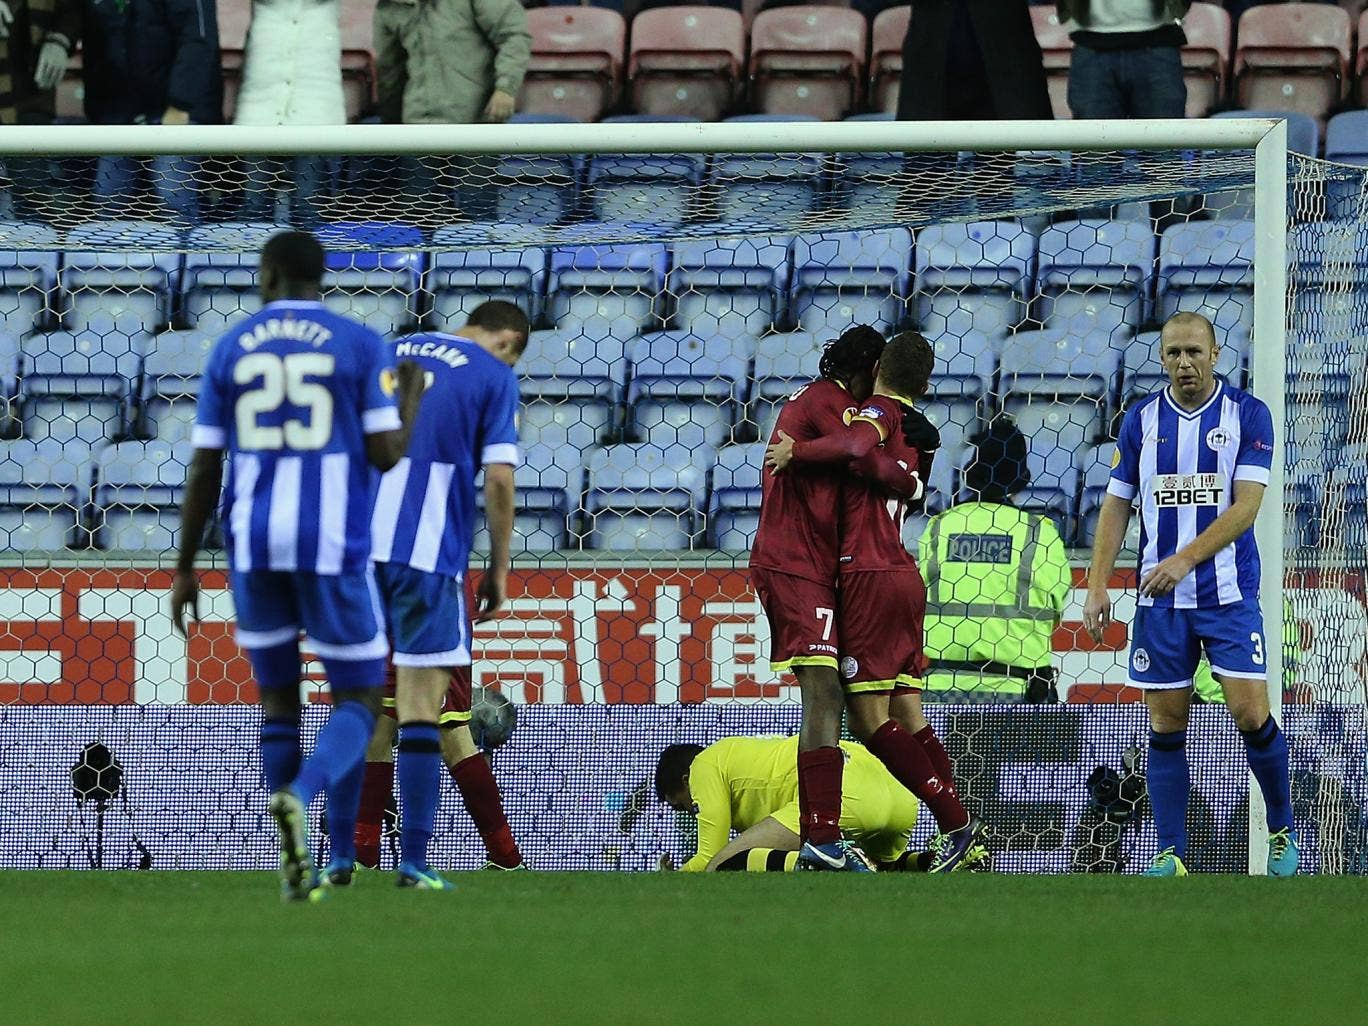 Wigan lost out to Zulte-Waregem 2-1 last time out